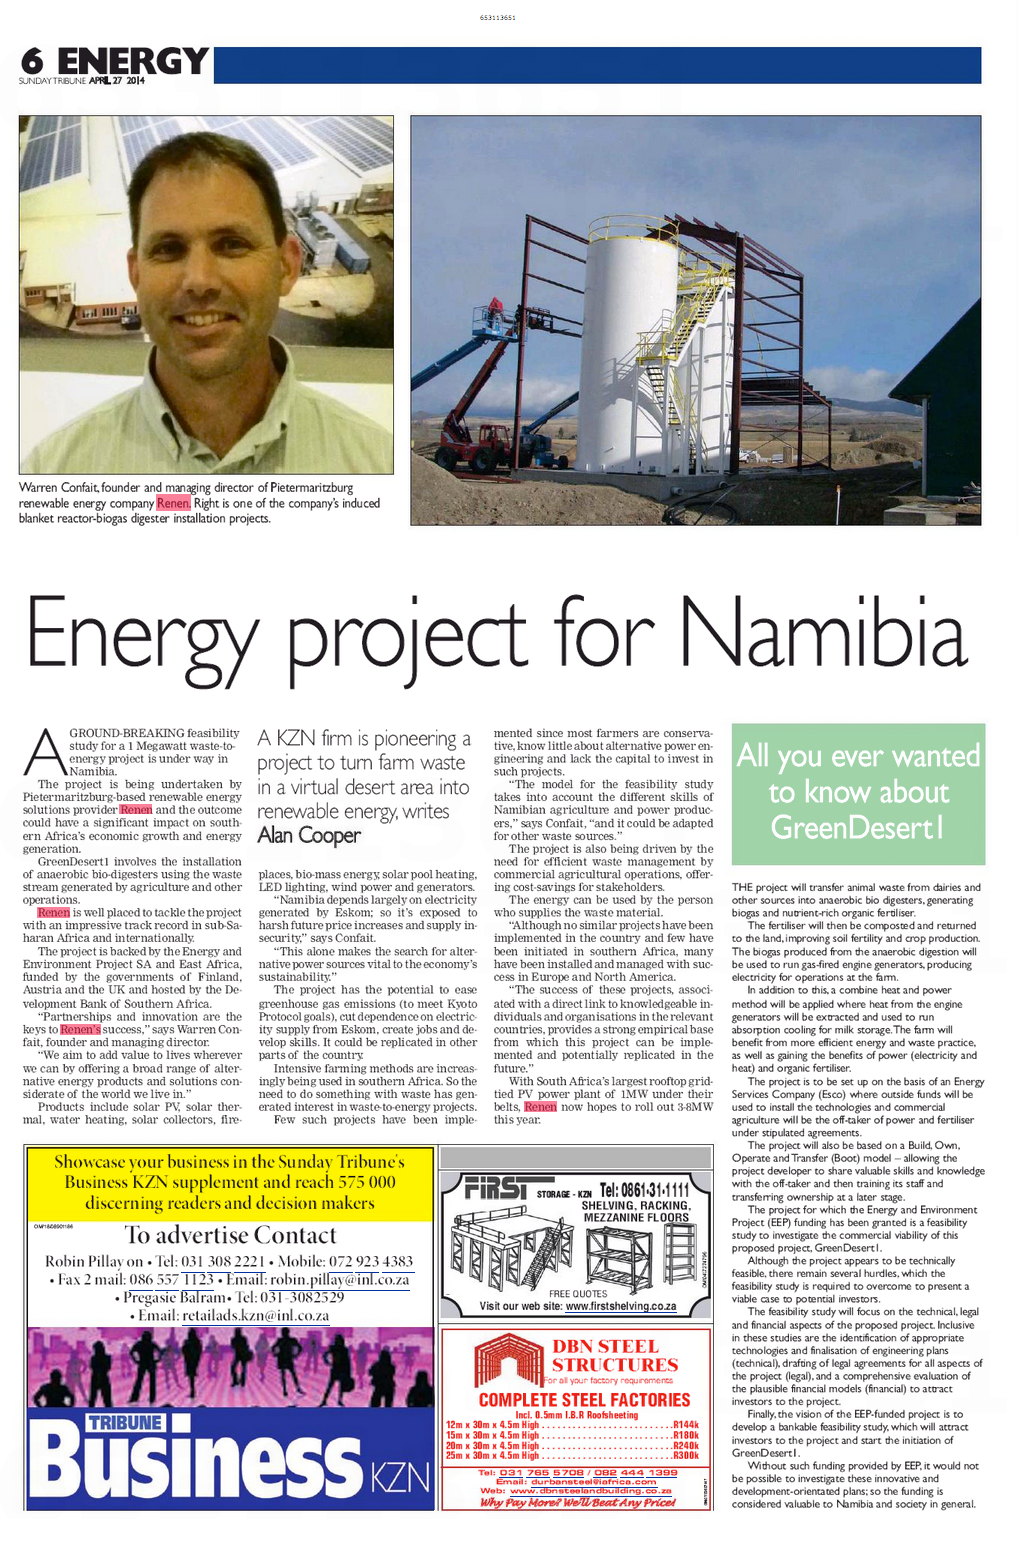 Energy Project for Namibia